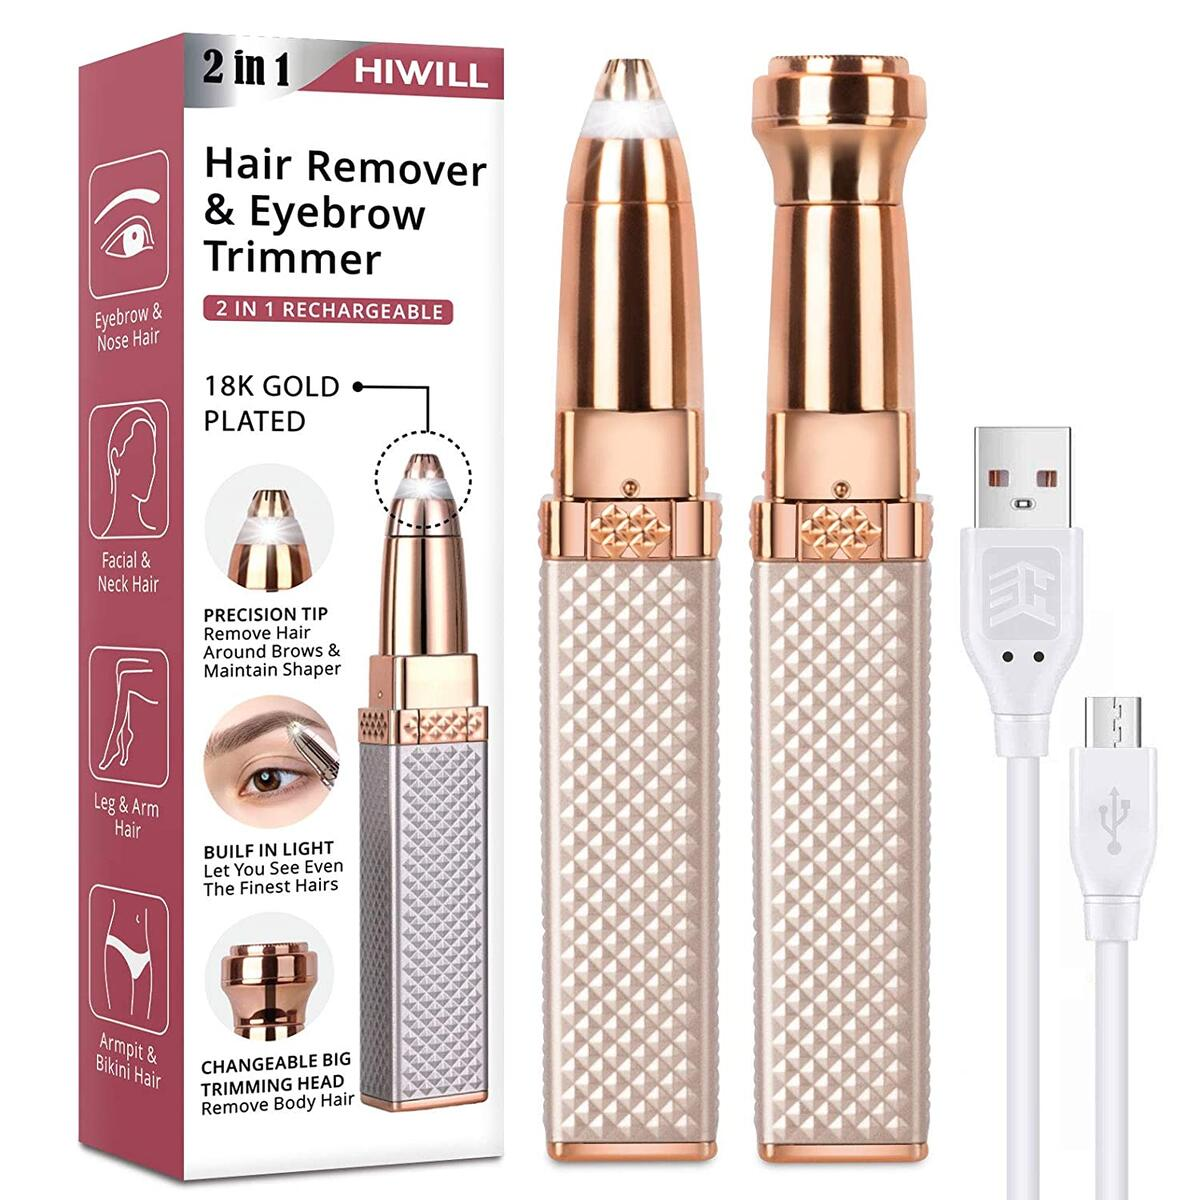 Eyebrow Trimmer, Rechargeable Facial Hair Remover for Women, 2 in 1 Eyebrow Razor and Painless Eyebrow Hair Remover with Built-in LED Light for Face Lips Nose Facial Hair Removal for women Men